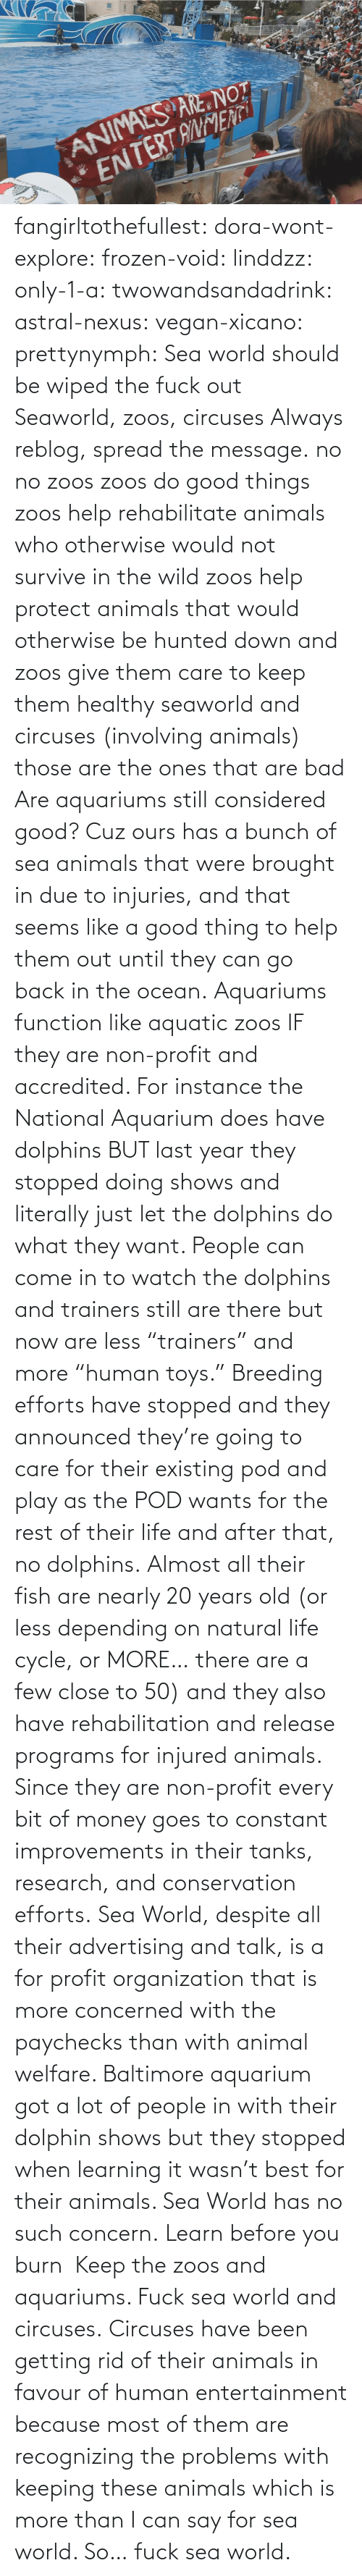 "Dora: fangirltothefullest:  dora-wont-explore:  frozen-void:  linddzz:  only-1-a:  twowandsandadrink:  astral-nexus:  vegan-xicano:  prettynymph:  Sea world should be wiped the fuck out  Seaworld, zoos, circuses  Always reblog, spread the message.  no no zoos zoos do good things zoos help rehabilitate animals who otherwise would not survive in the wild zoos help protect animals that would otherwise be hunted down and zoos give them care to keep them healthy seaworld and circuses (involving animals) those are the ones that are bad  Are aquariums still considered good? Cuz ours has a bunch of sea animals that were brought in due to injuries, and that seems like a good thing to help them out until they can go back in the ocean.  Aquariums function like aquatic zoos IF they are non-profit and accredited. For instance the National Aquarium does have dolphins BUT last year they stopped doing shows and literally just let the dolphins do what they want. People can come in to watch the dolphins and trainers still are there but now are less ""trainers"" and more ""human toys."" Breeding efforts have stopped and they announced they're going to care for their existing pod and play as the POD wants for the rest of their life and after that, no dolphins. Almost all their fish are nearly 20 years old (or less depending on natural life cycle, or MORE… there are a few close to 50) and they also have rehabilitation and release programs for injured animals. Since they are non-profit every bit of money goes to constant improvements in their tanks, research, and conservation efforts. Sea World, despite all their advertising and talk, is a for profit organization that is more concerned with the paychecks than with animal welfare. Baltimore aquarium got a lot of people in with their dolphin shows but they stopped when learning it wasn't best for their animals. Sea World has no such concern.  Learn before you burn   Keep the zoos and aquariums. Fuck sea world and circuses.  Circuses have been getting rid of  their animals in favour of human entertainment because most of them are recognizing the problems with keeping these animals which is more than I can say for sea world. So… fuck sea world."